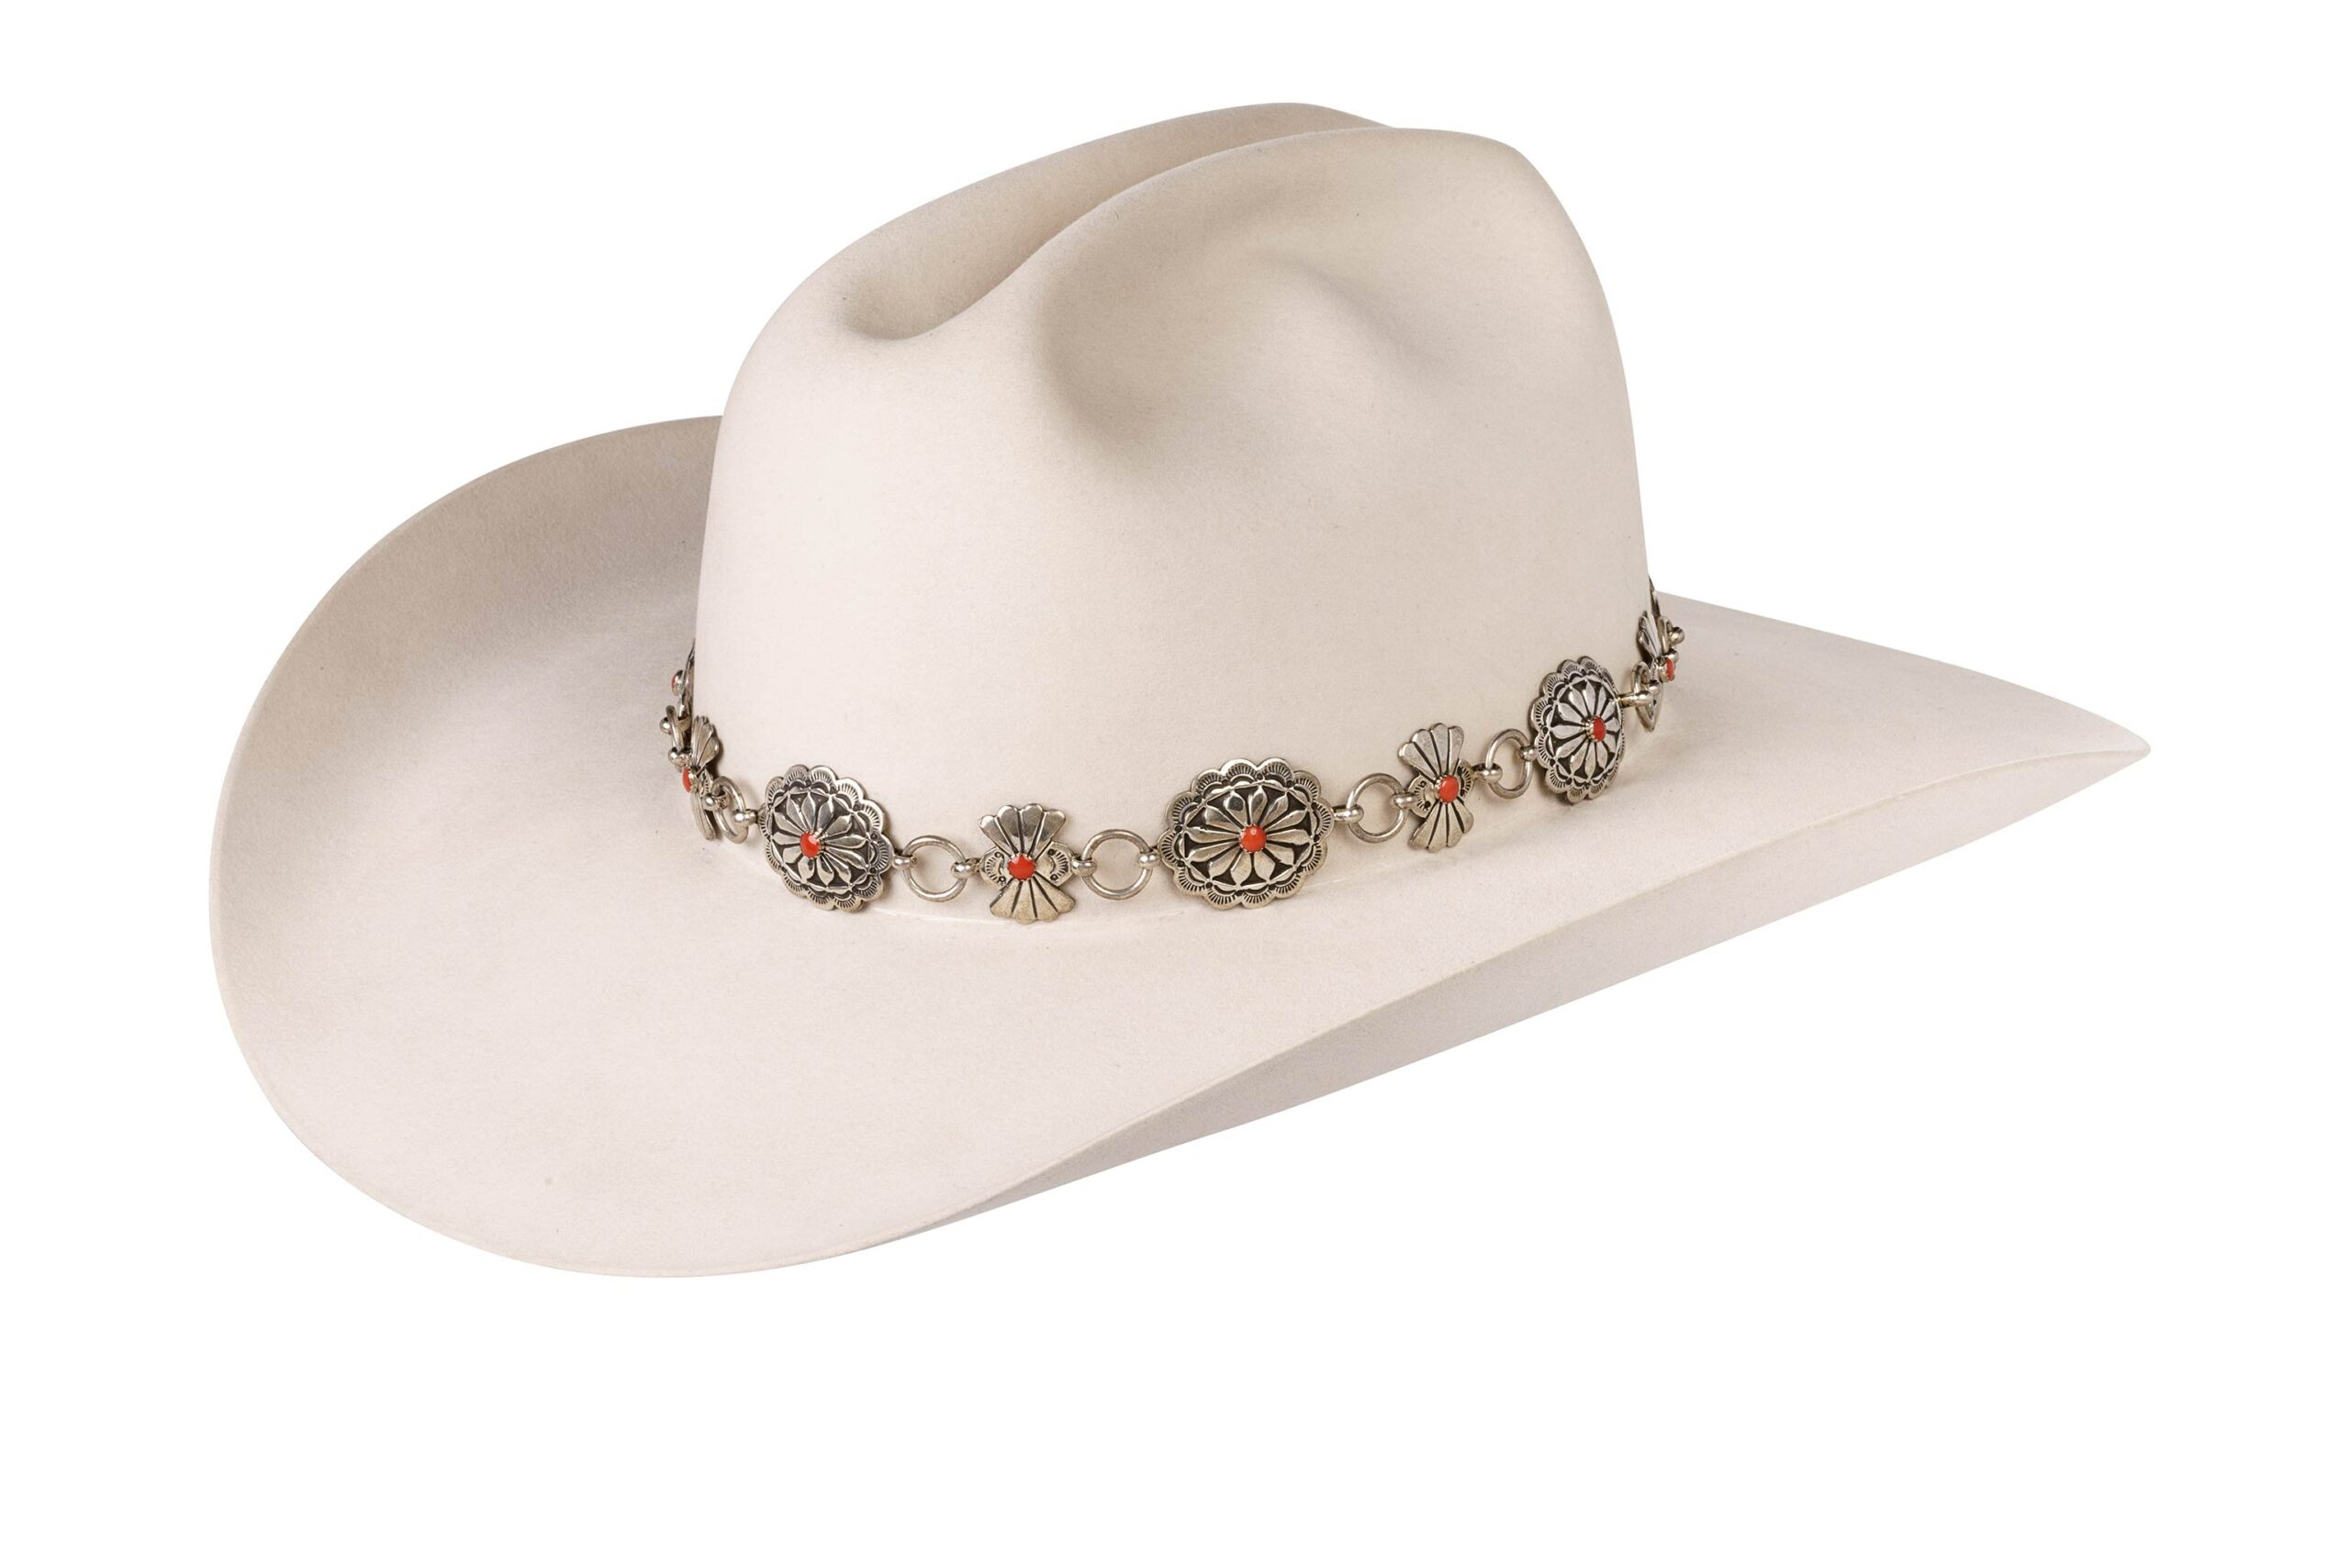 Elroy Linked Sterling Concho and Upright Butterflies Hat Band